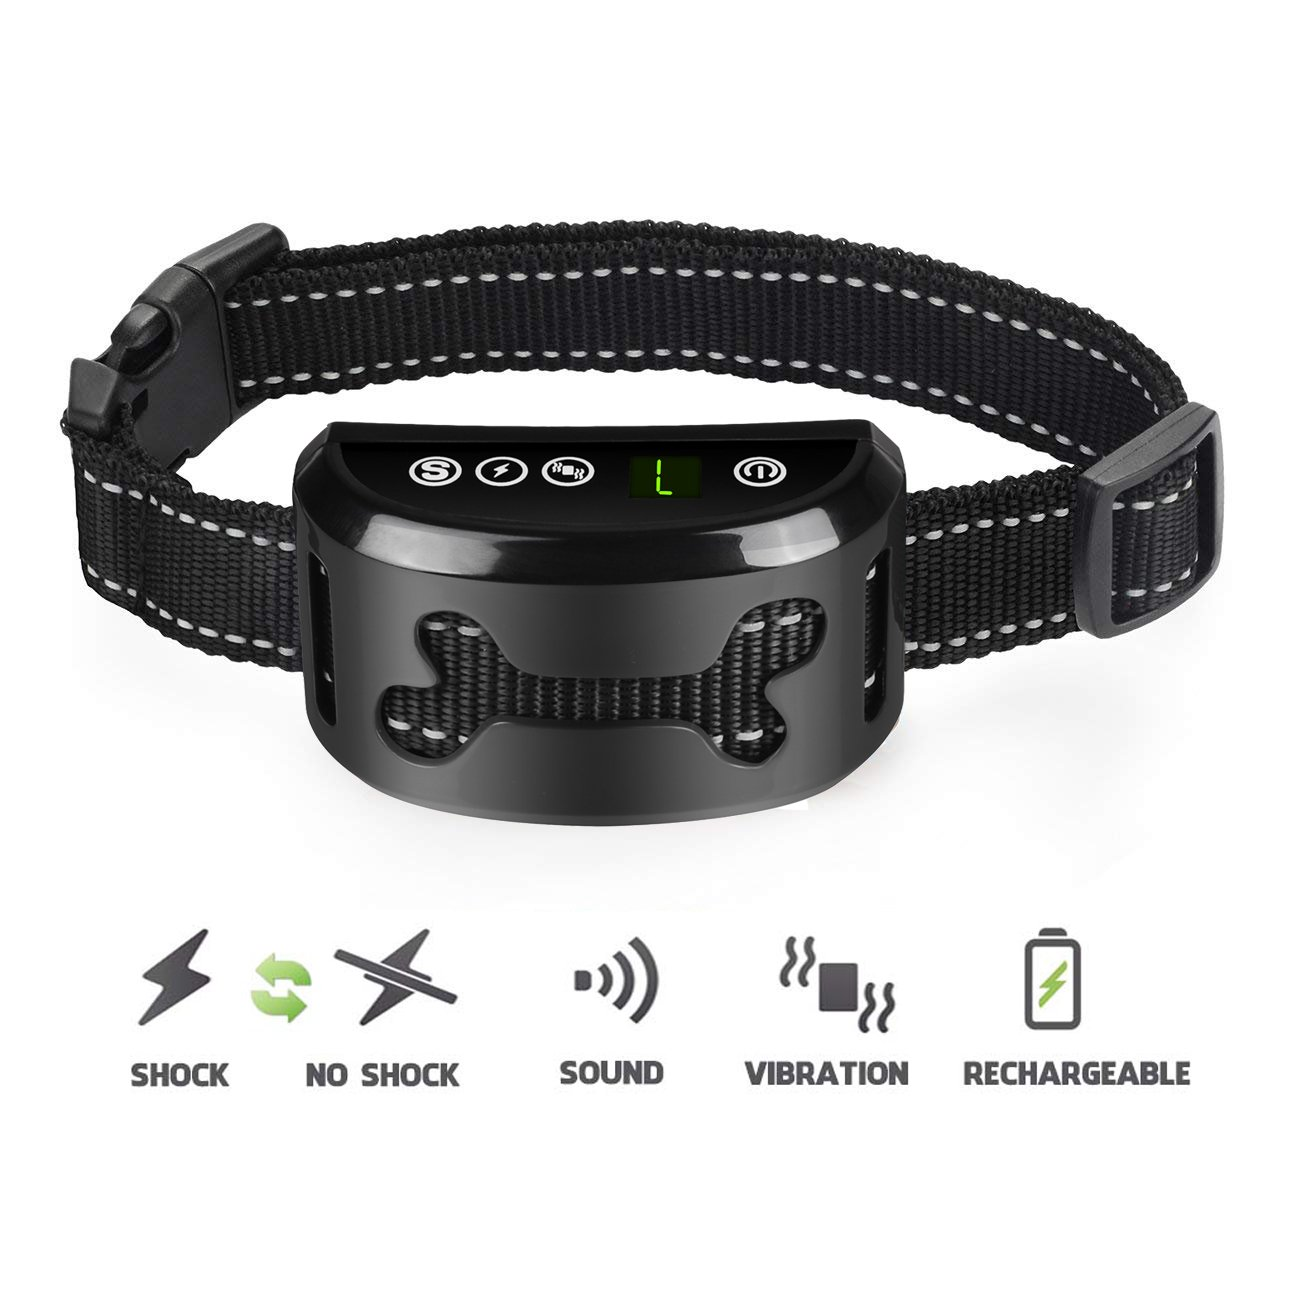 POP VIEW Dog Bark Collar with Static Vibration Correction, USB Rechargeable with 4 Training Modes for All Breeds and Sizes